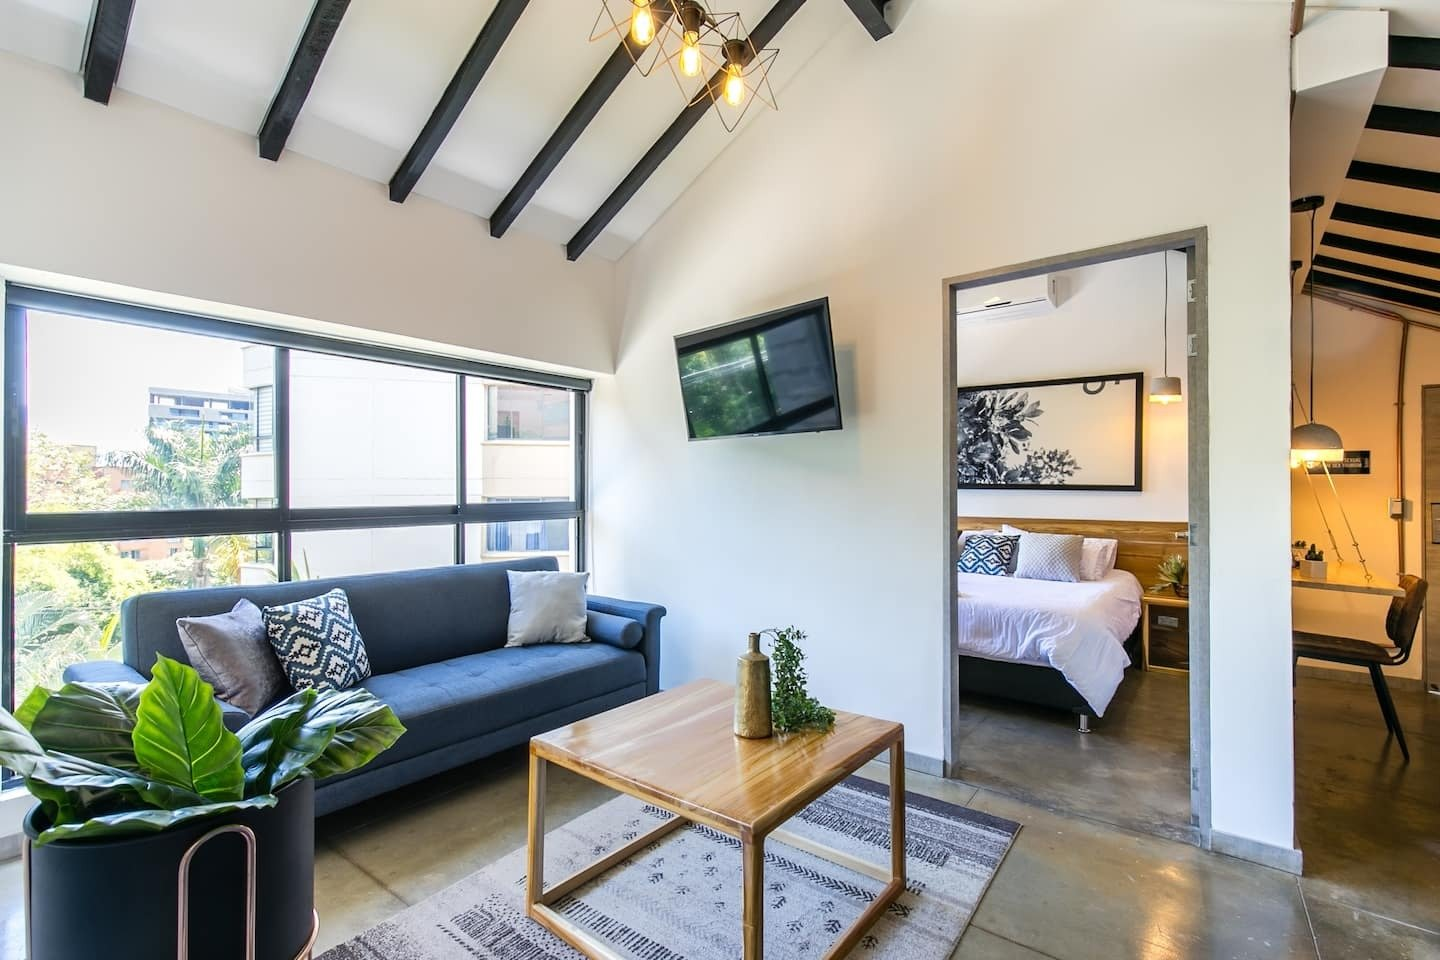 Airbnb in Medellin